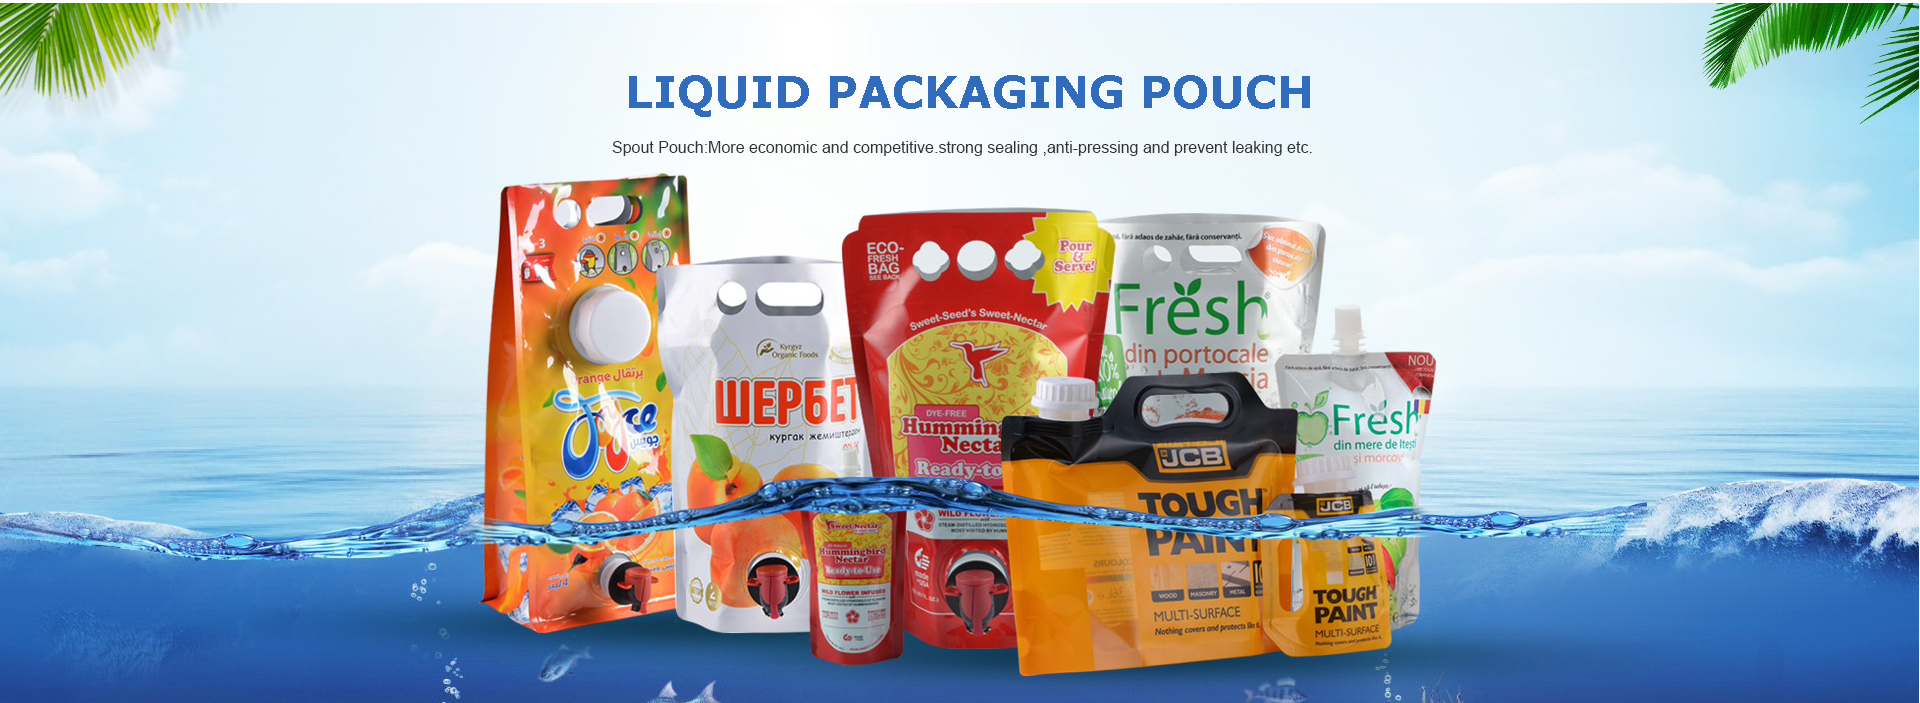 Liquid Packaging Pouch